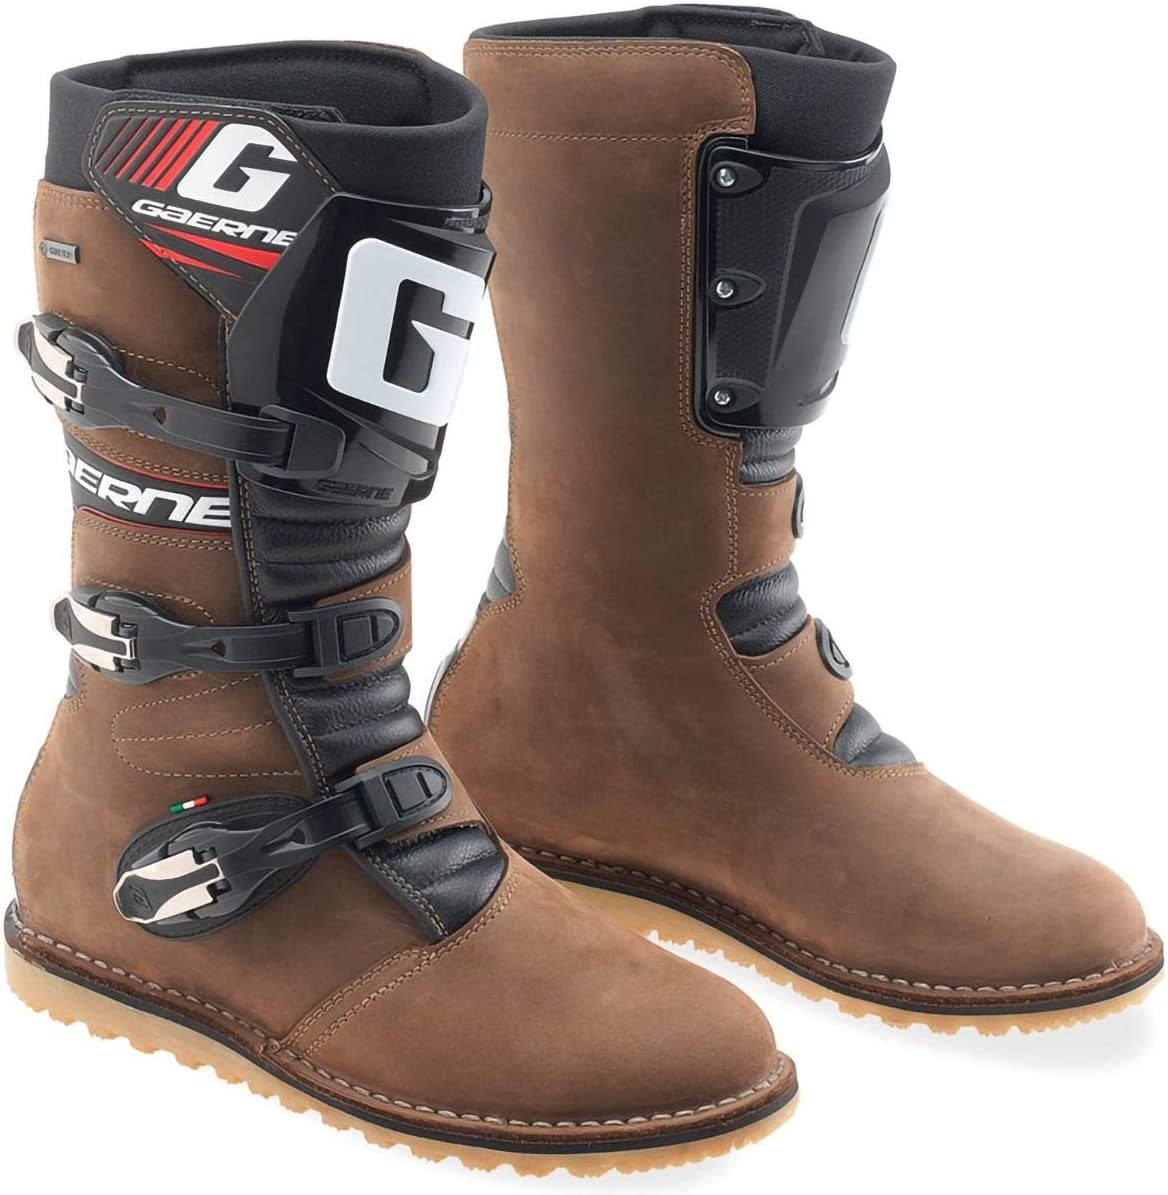 Brown 12 Gaerne G All-Terrain Boots